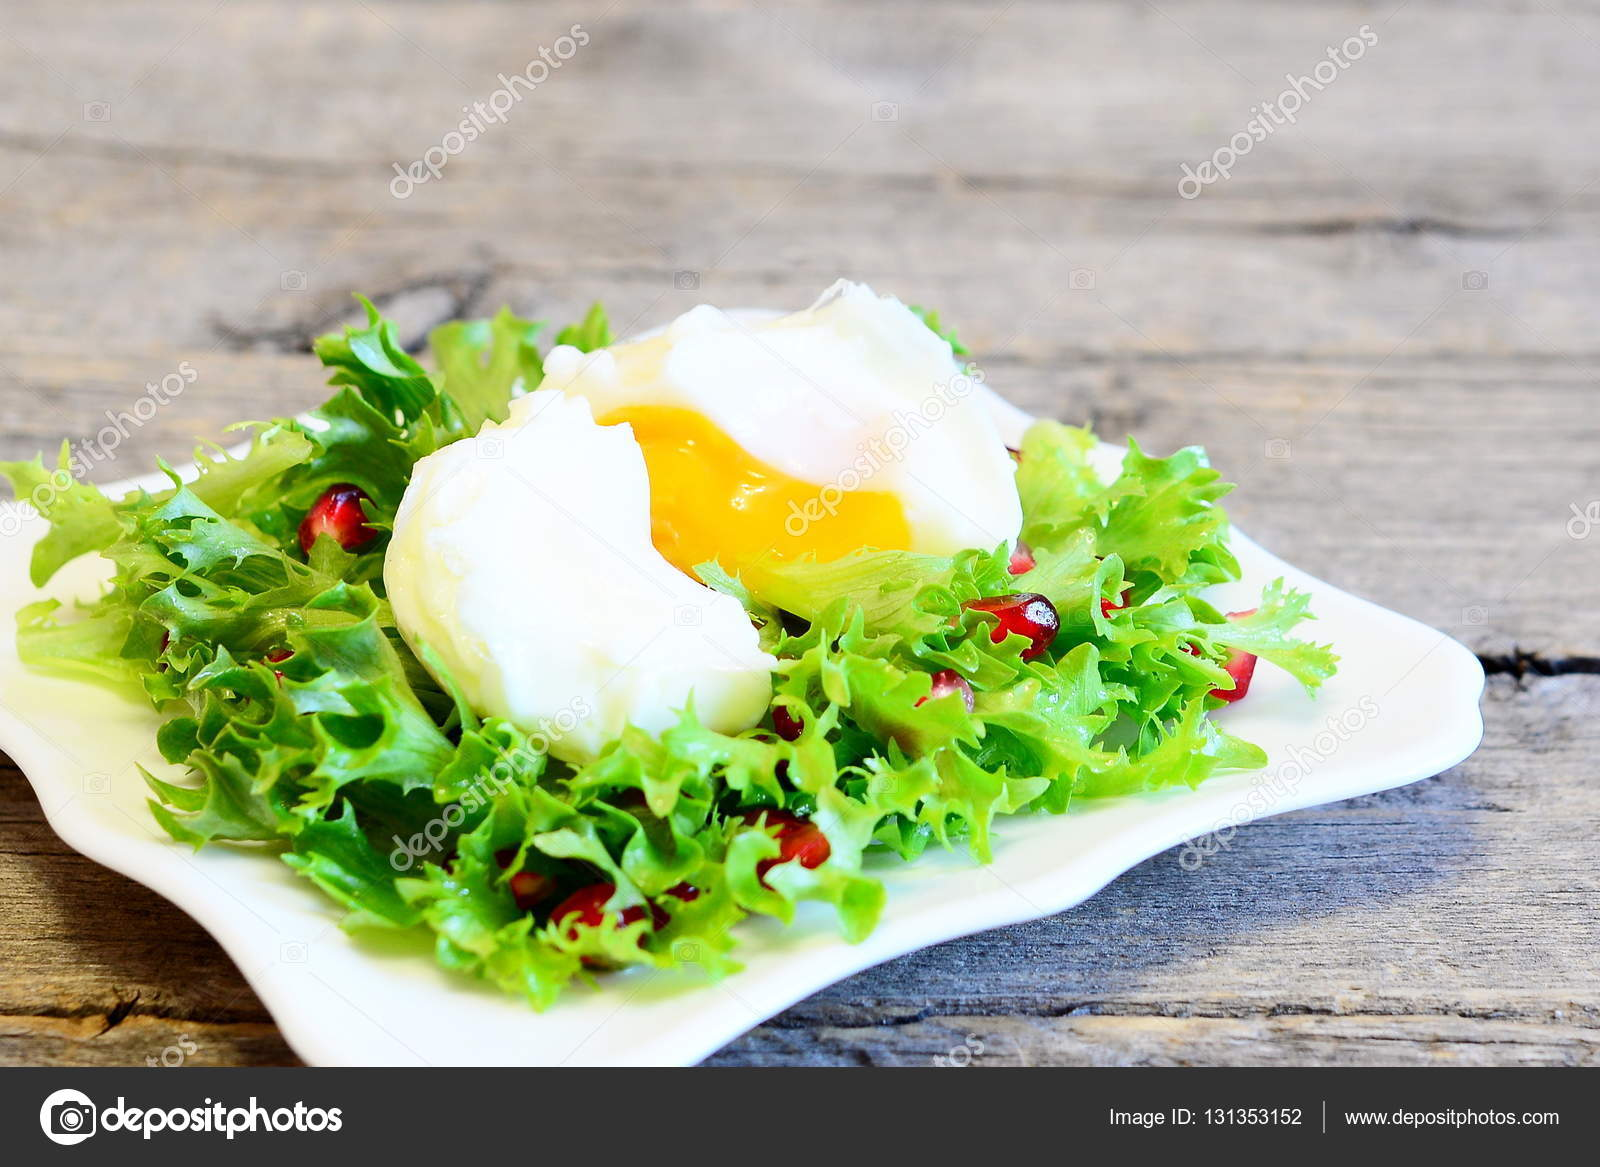 Poached egg, frise lettuce leaves with pomegranate seeds and olive